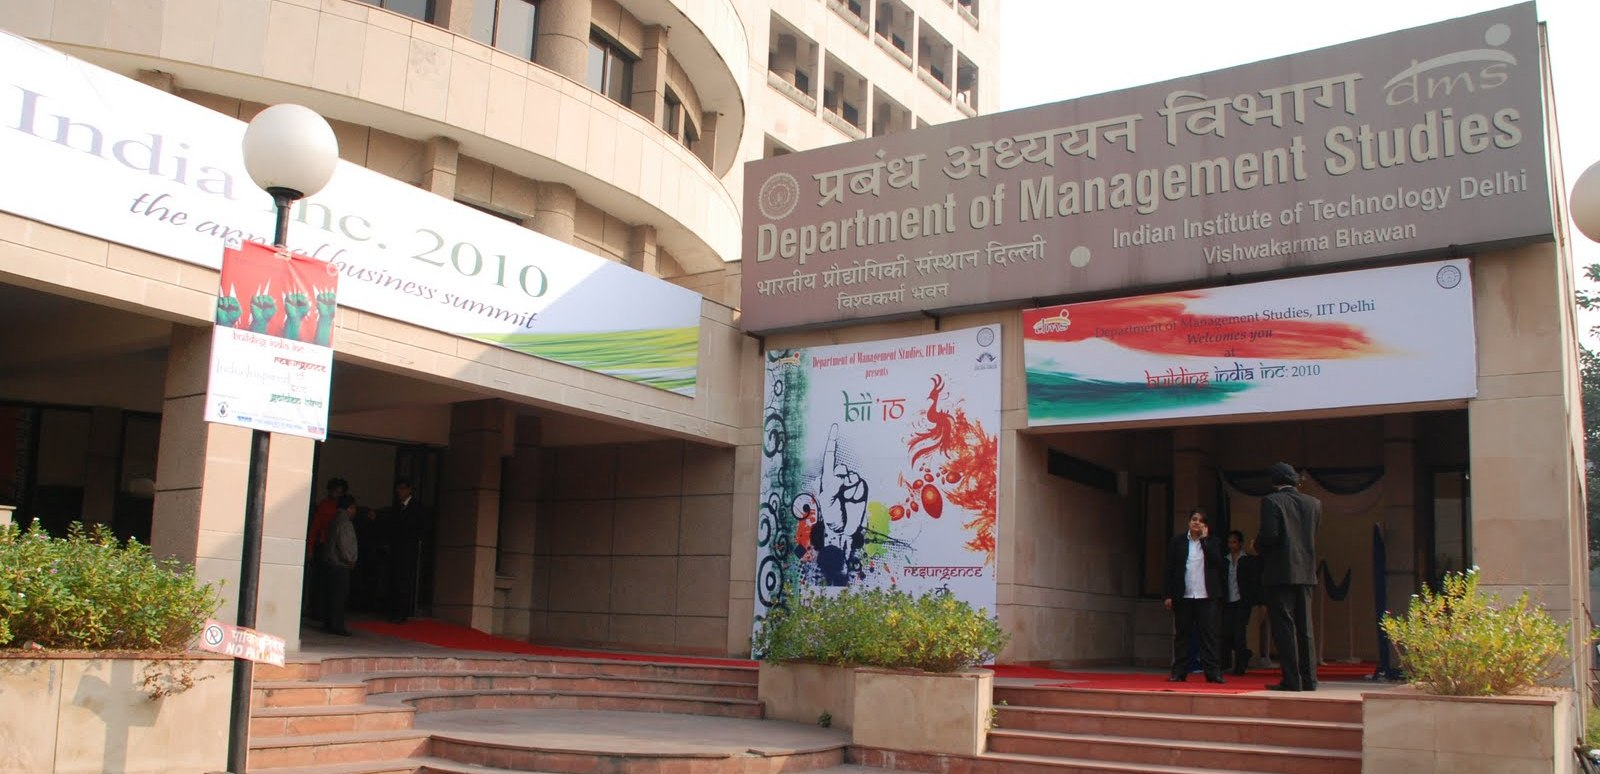 Department Of Management Studies Indian Institute Of Technology